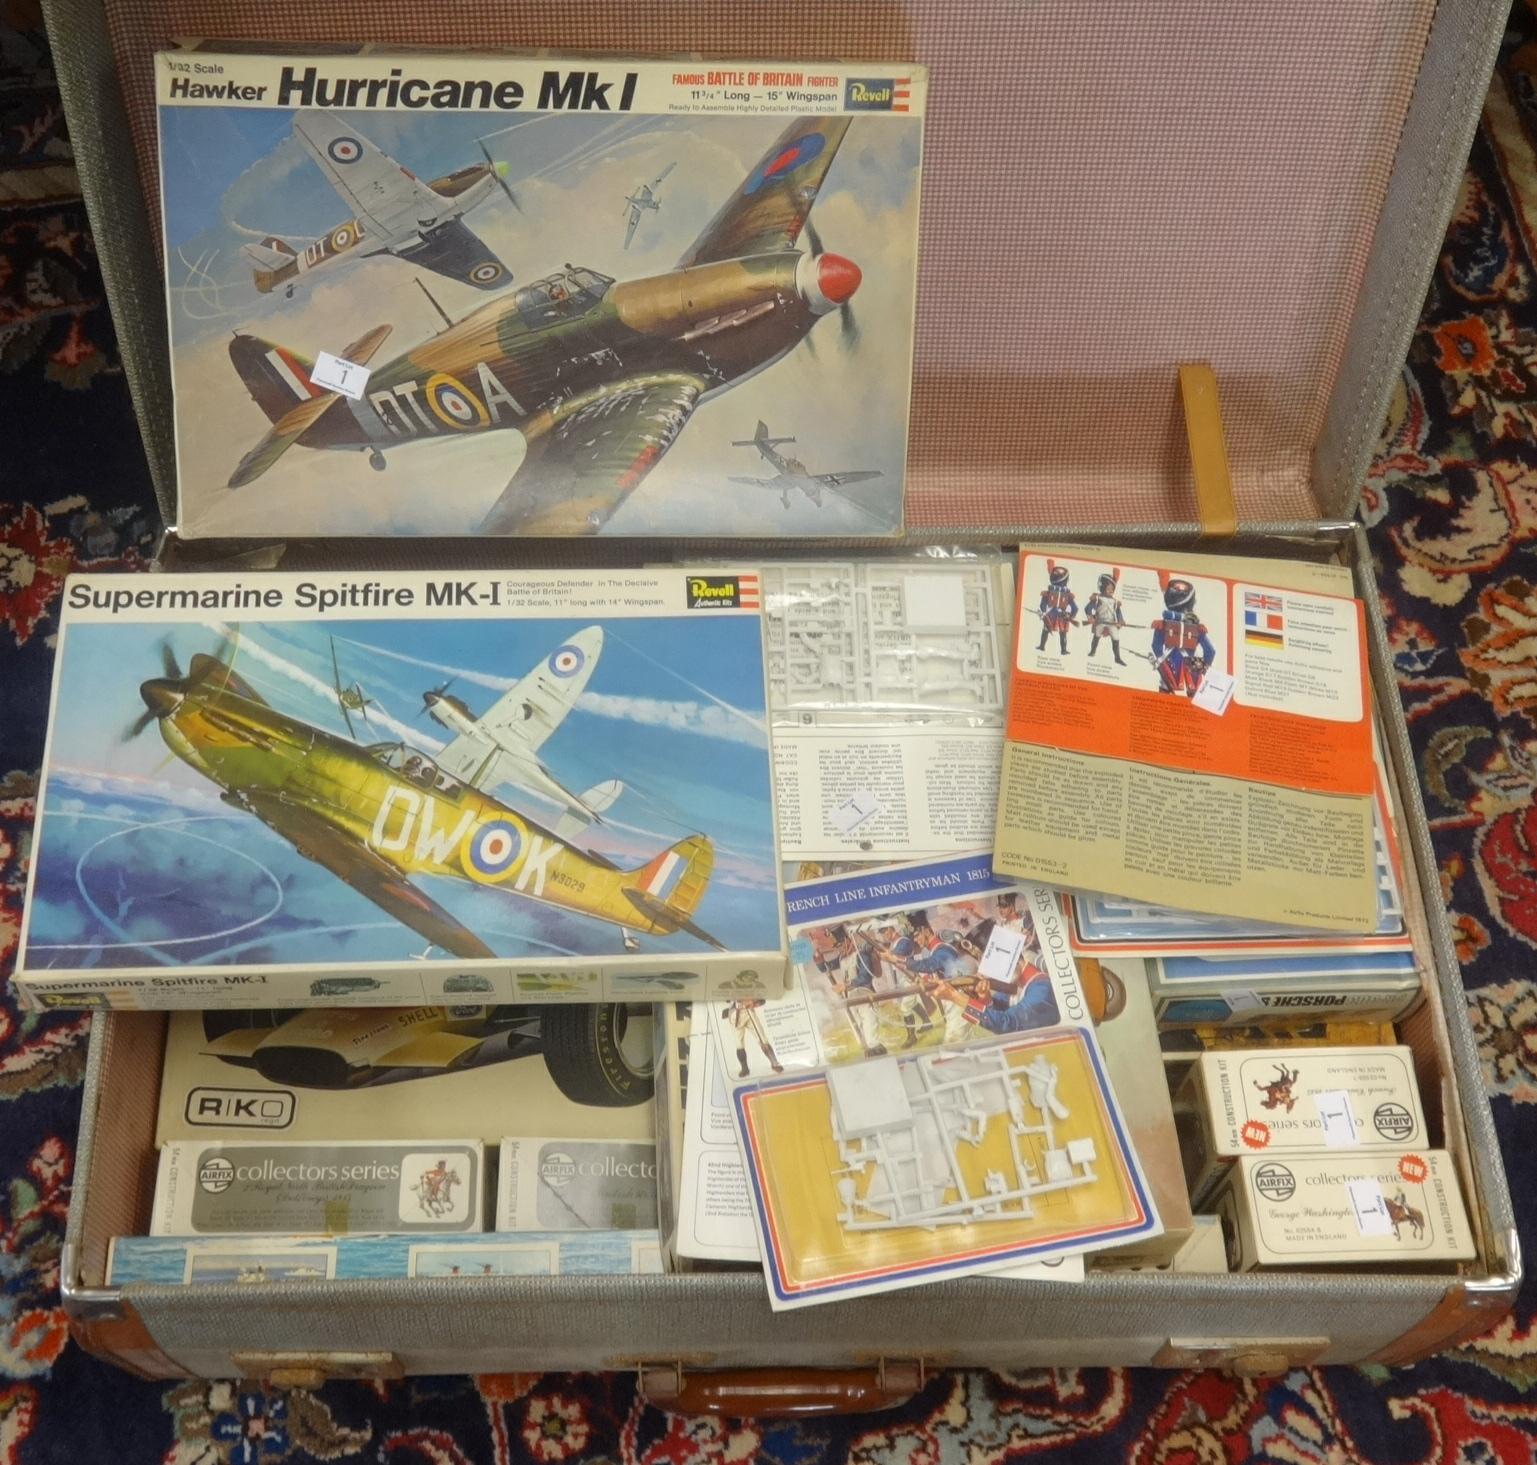 Lot 001 - A collection of various Revell scale model aircraft kits and also Airfix models including collectors